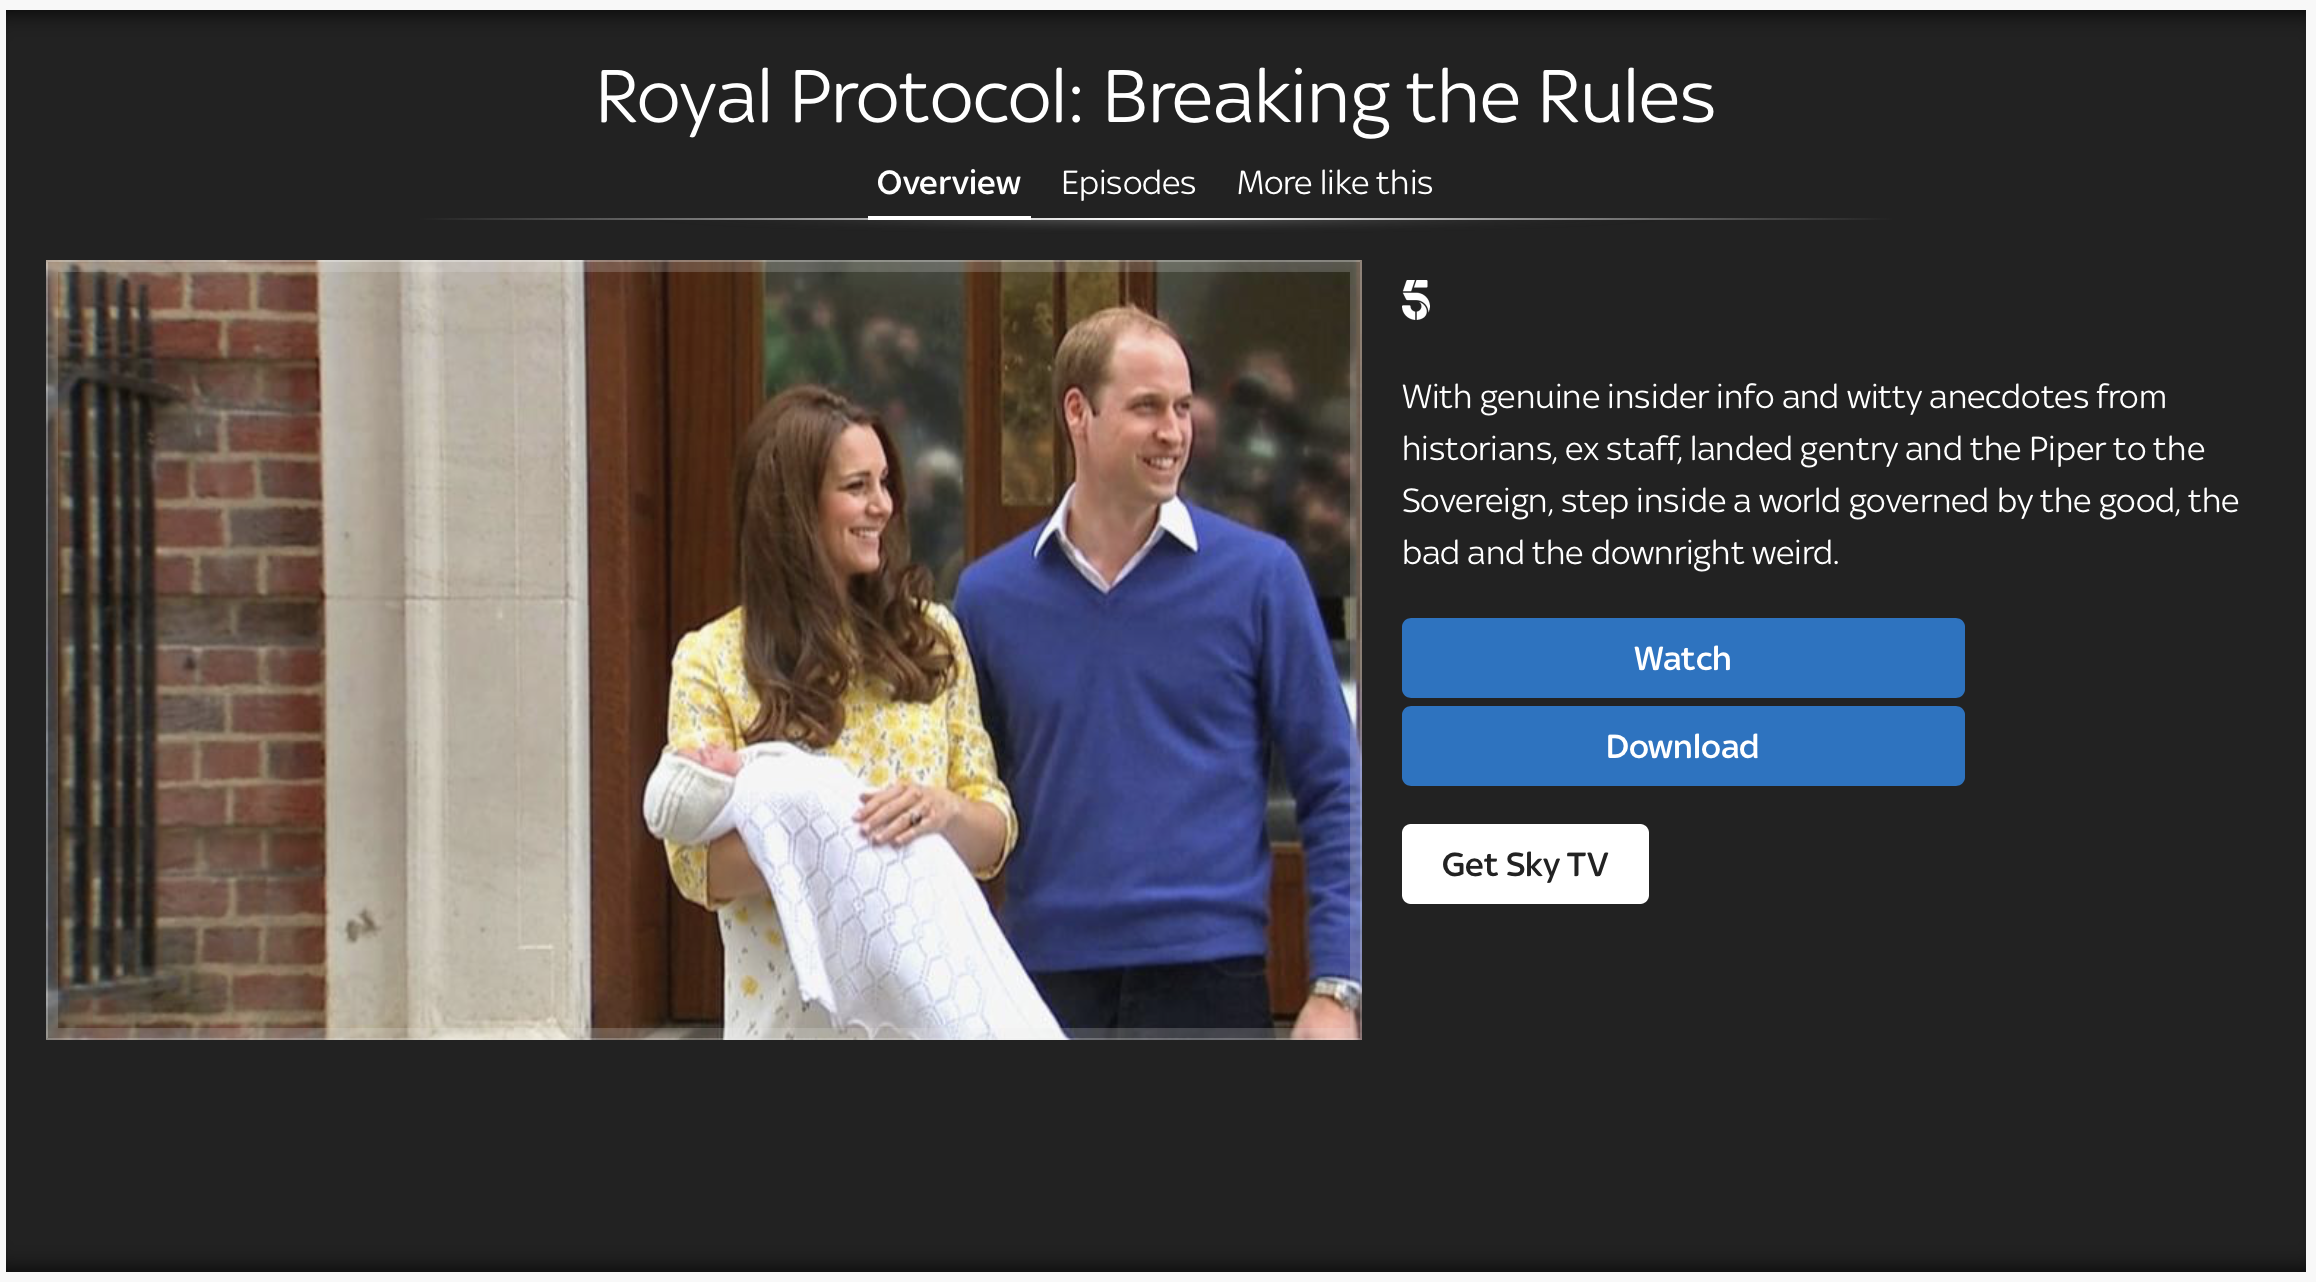 Royal Protocol: Breaking the Rules